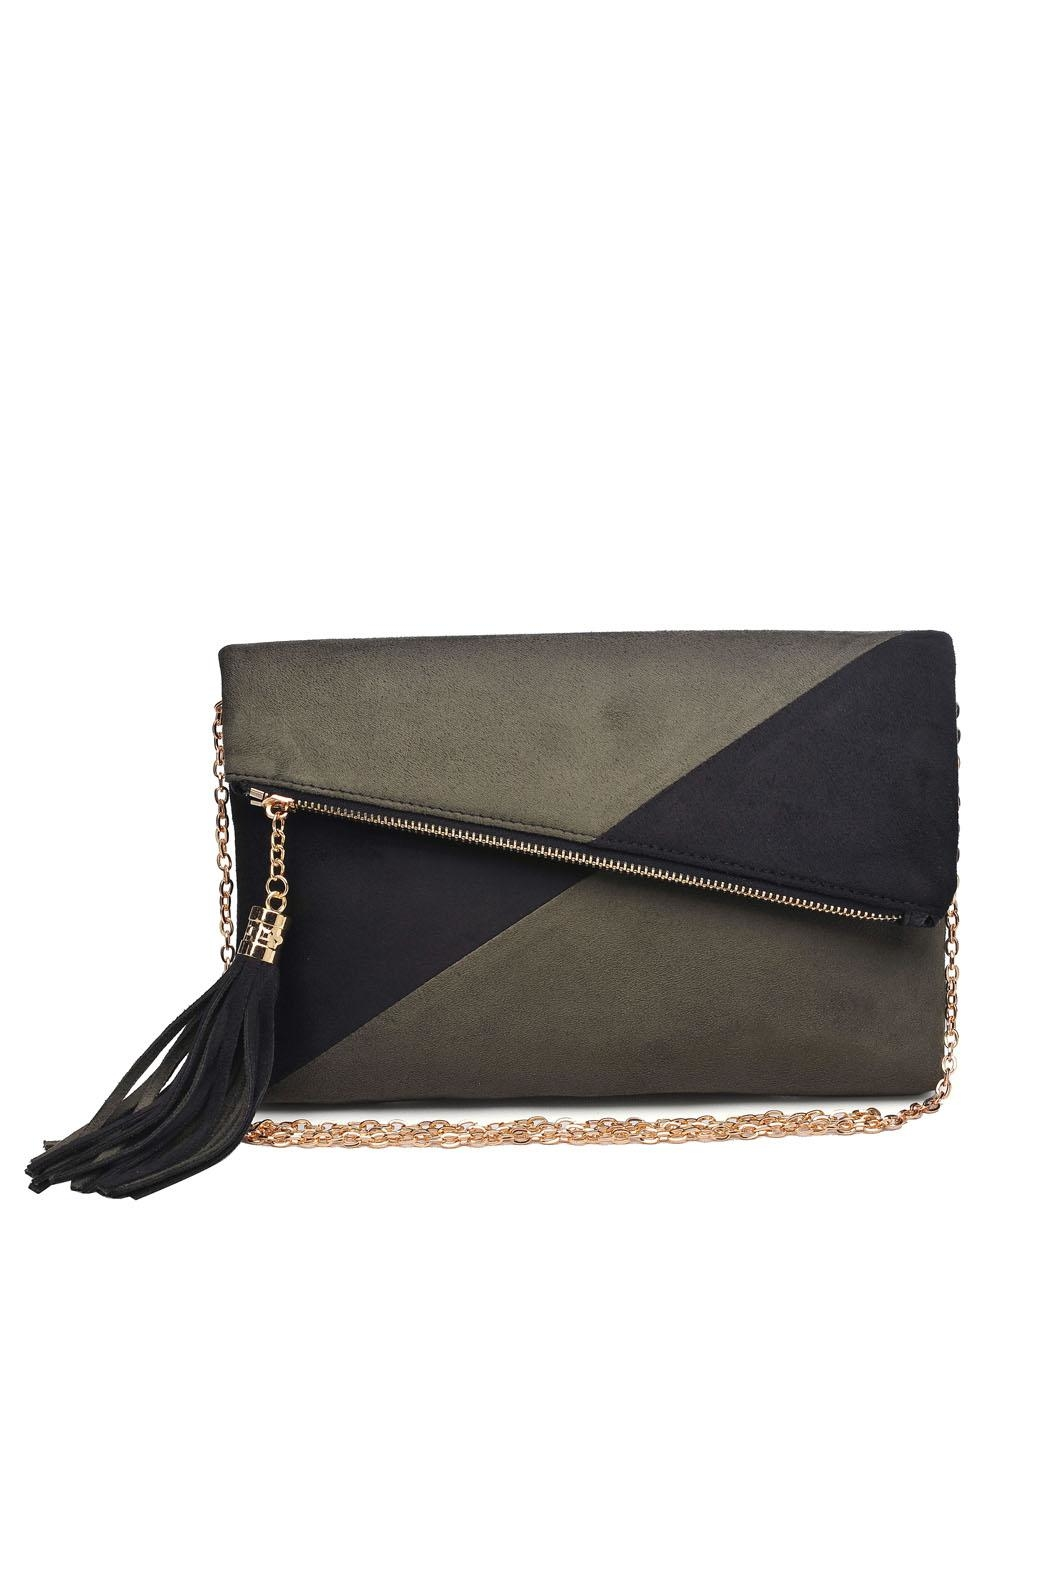 Urban Expressions Suede Foldover Clutch - Main Image